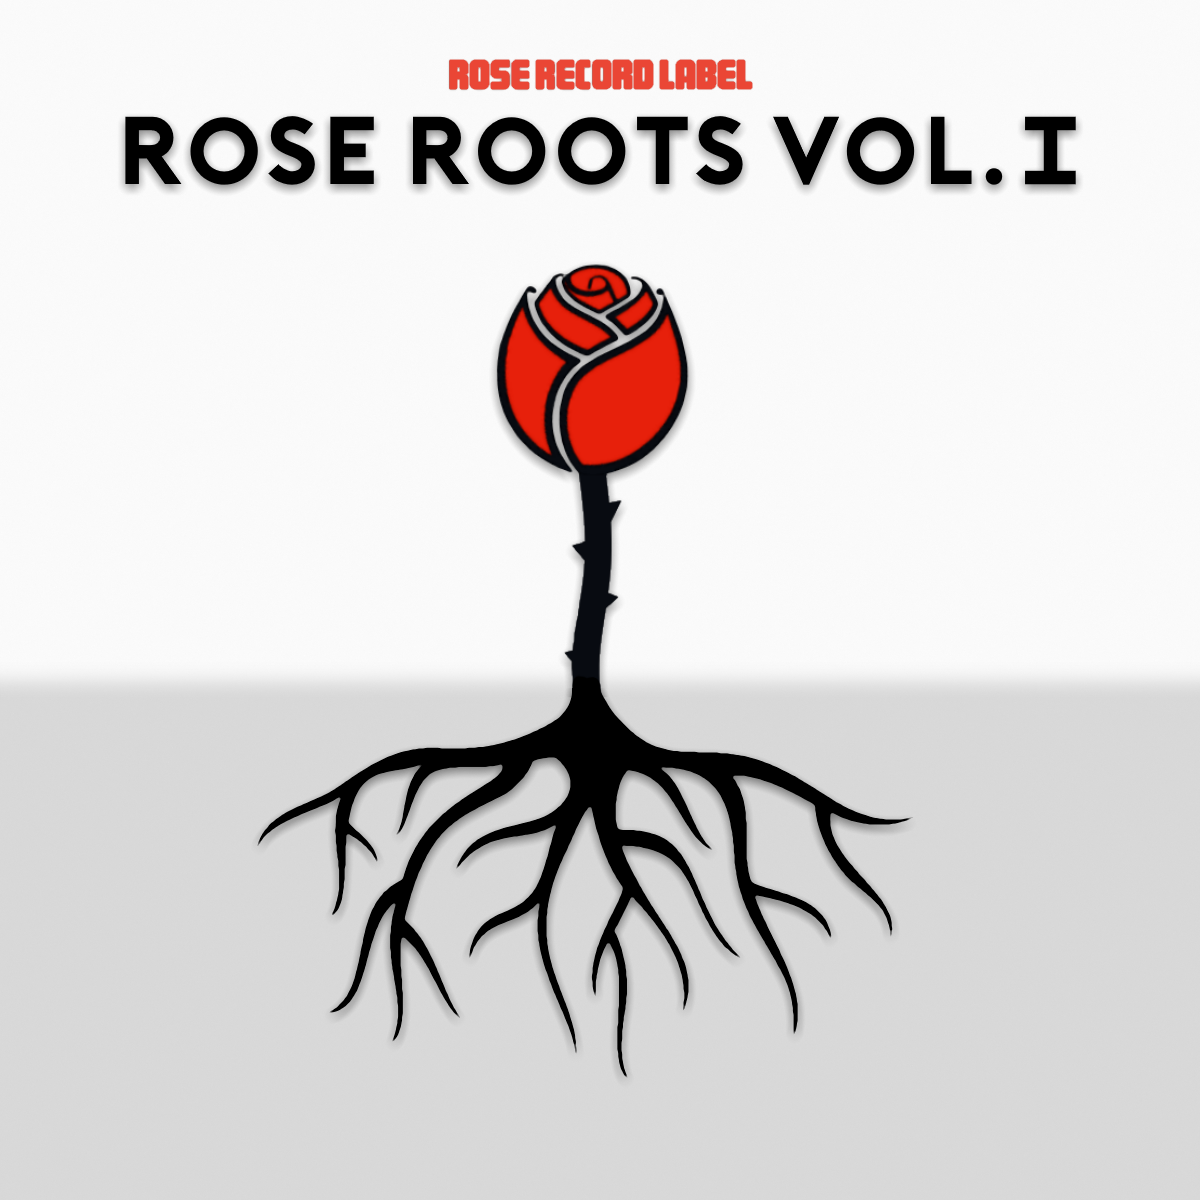 Rose Roots Vol 1 v2.png